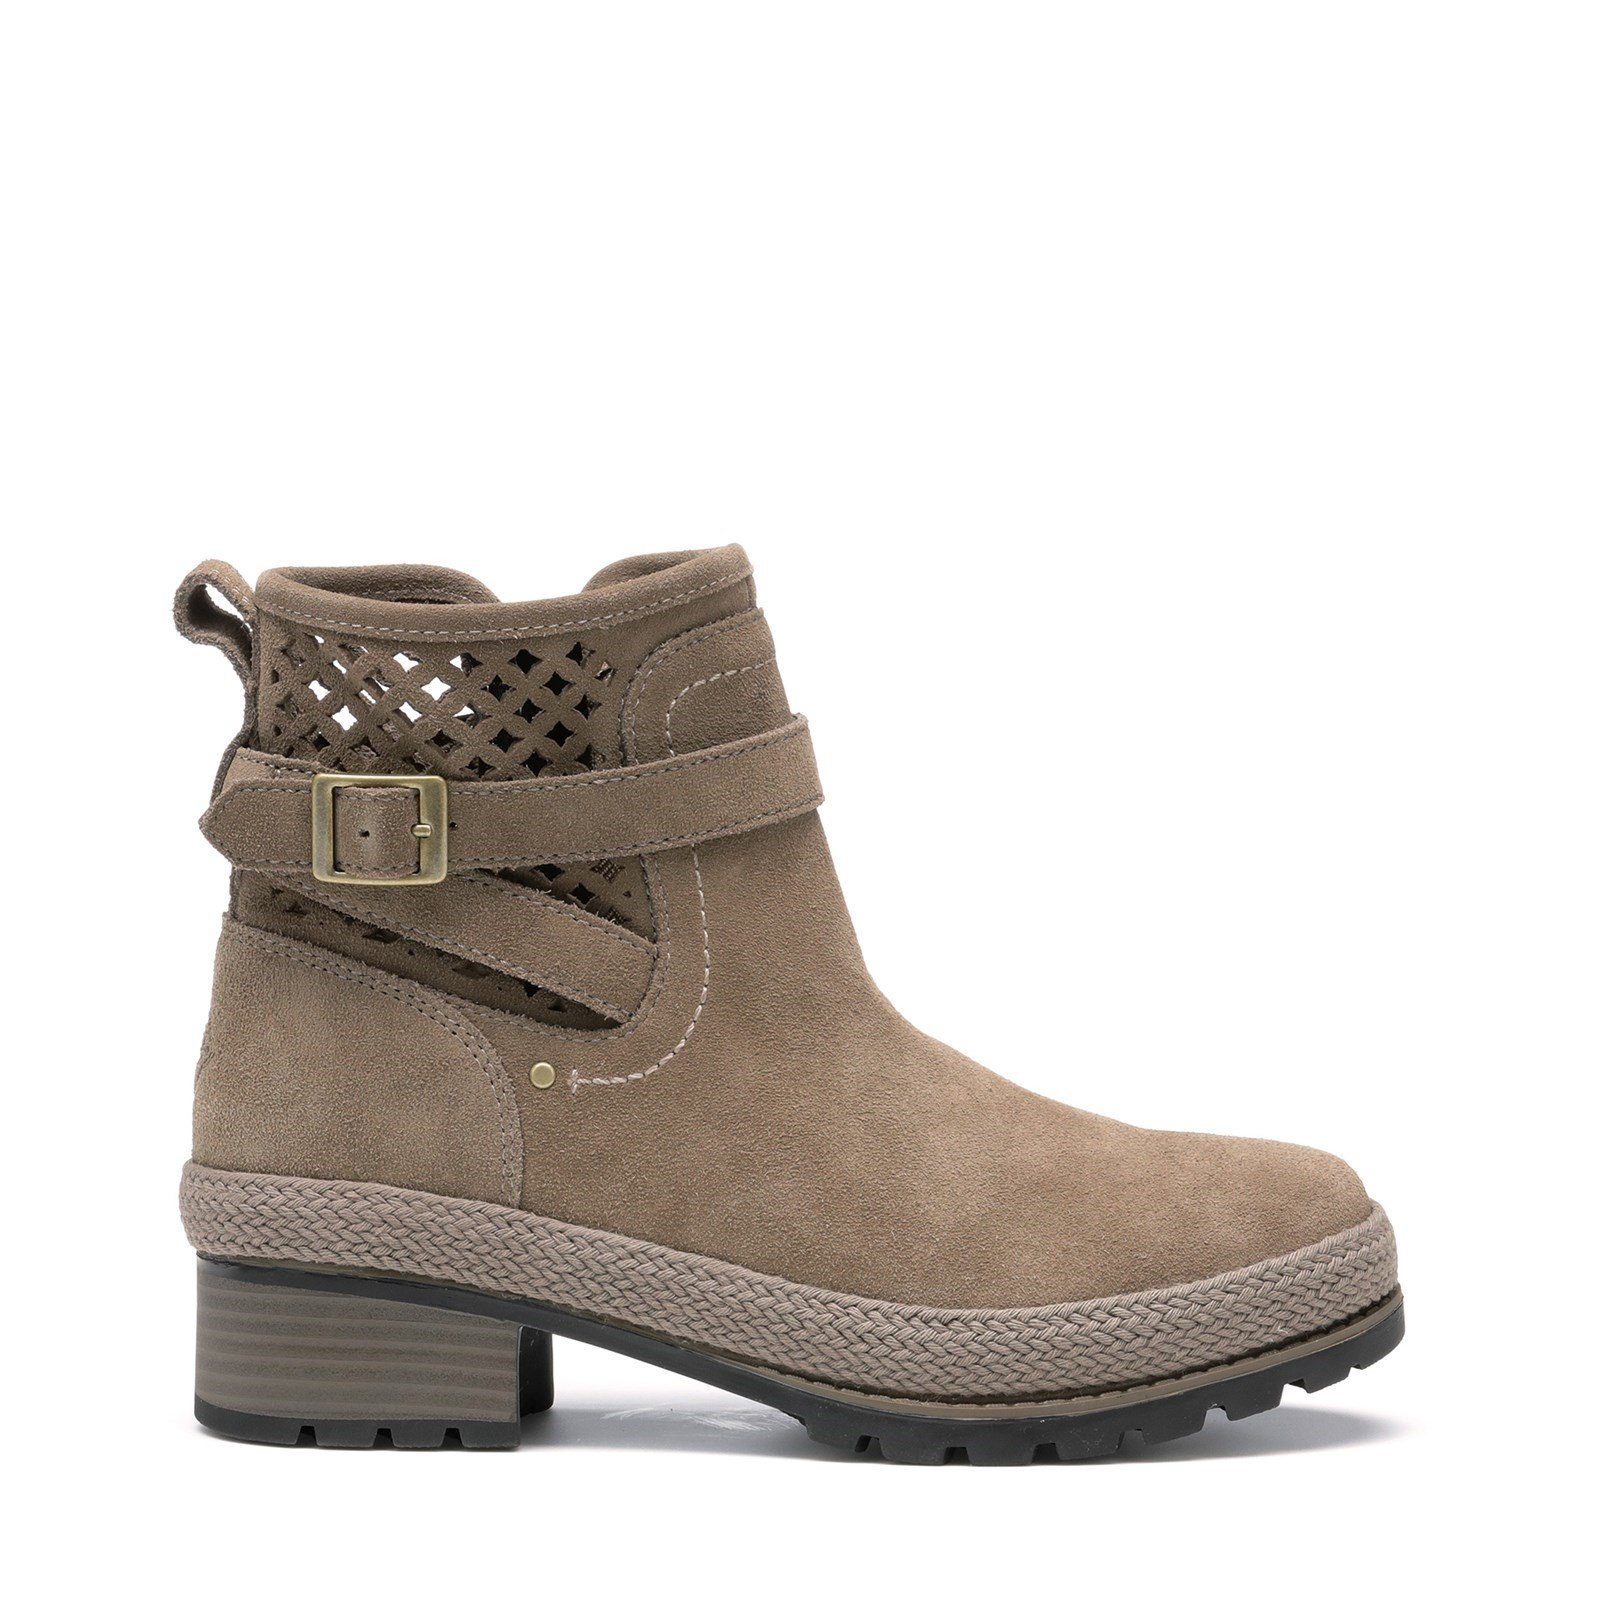 Muck Boots Women's Liberty Perforated Leather Boots Various Colours 31814 - Grey 5